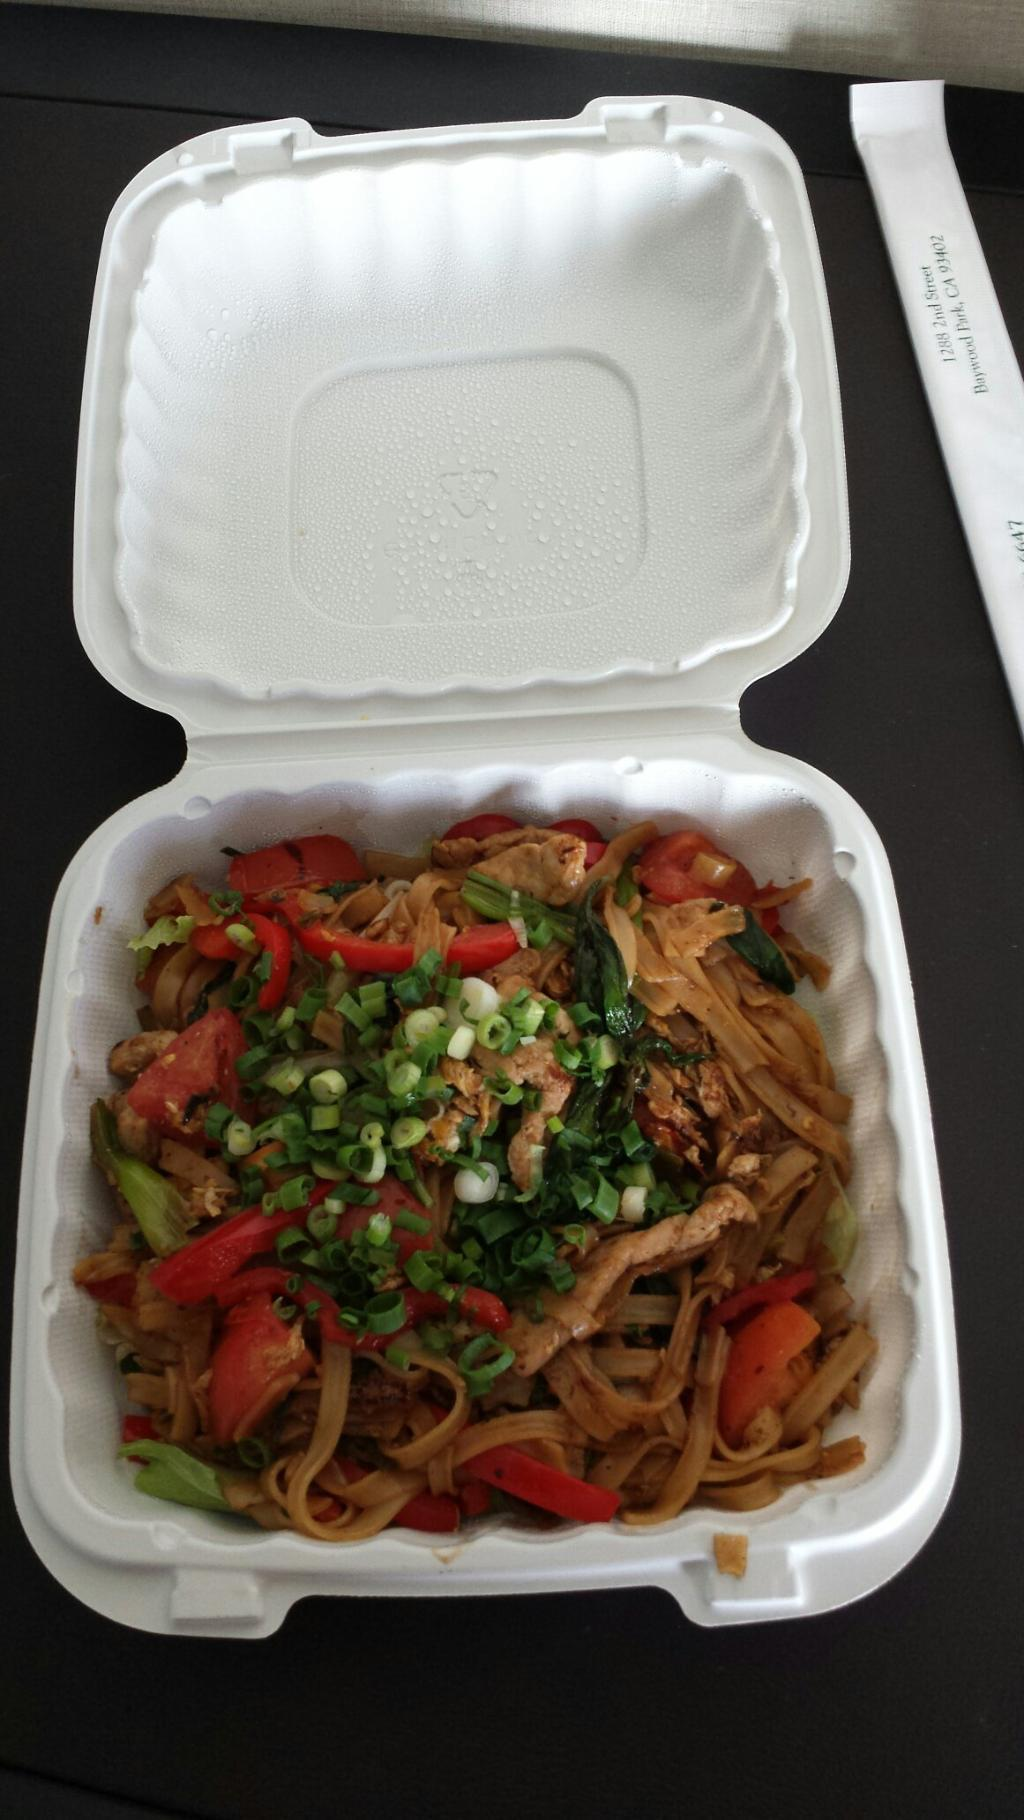 Noi`s Little tdai Takeout